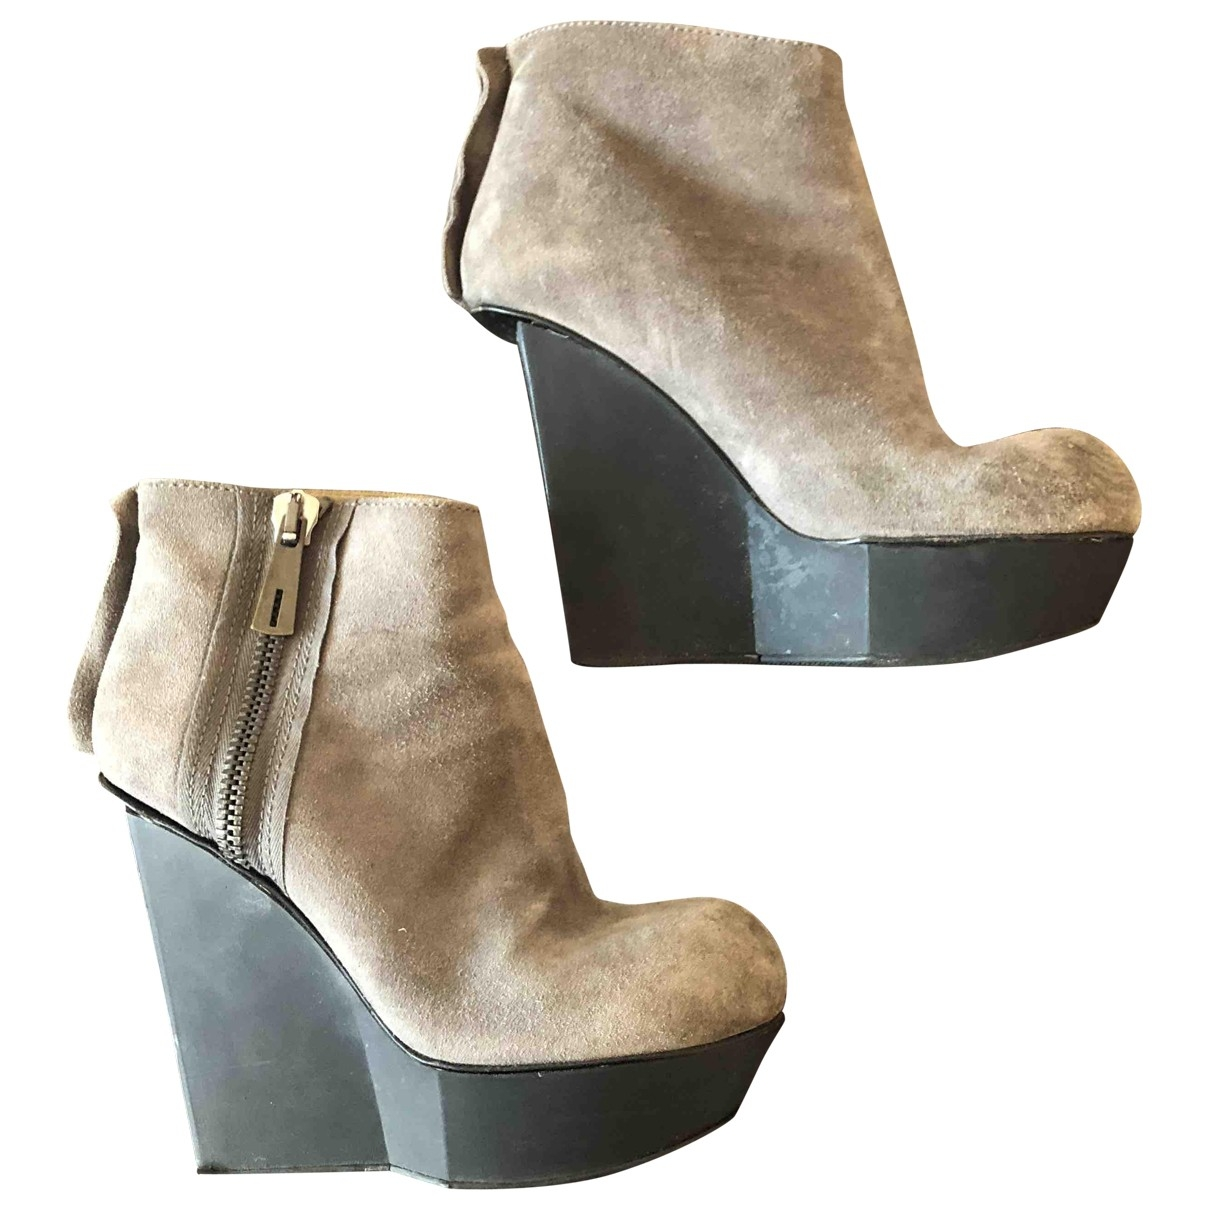 Acne Studios \N Grey Suede Boots for Women 37 EU